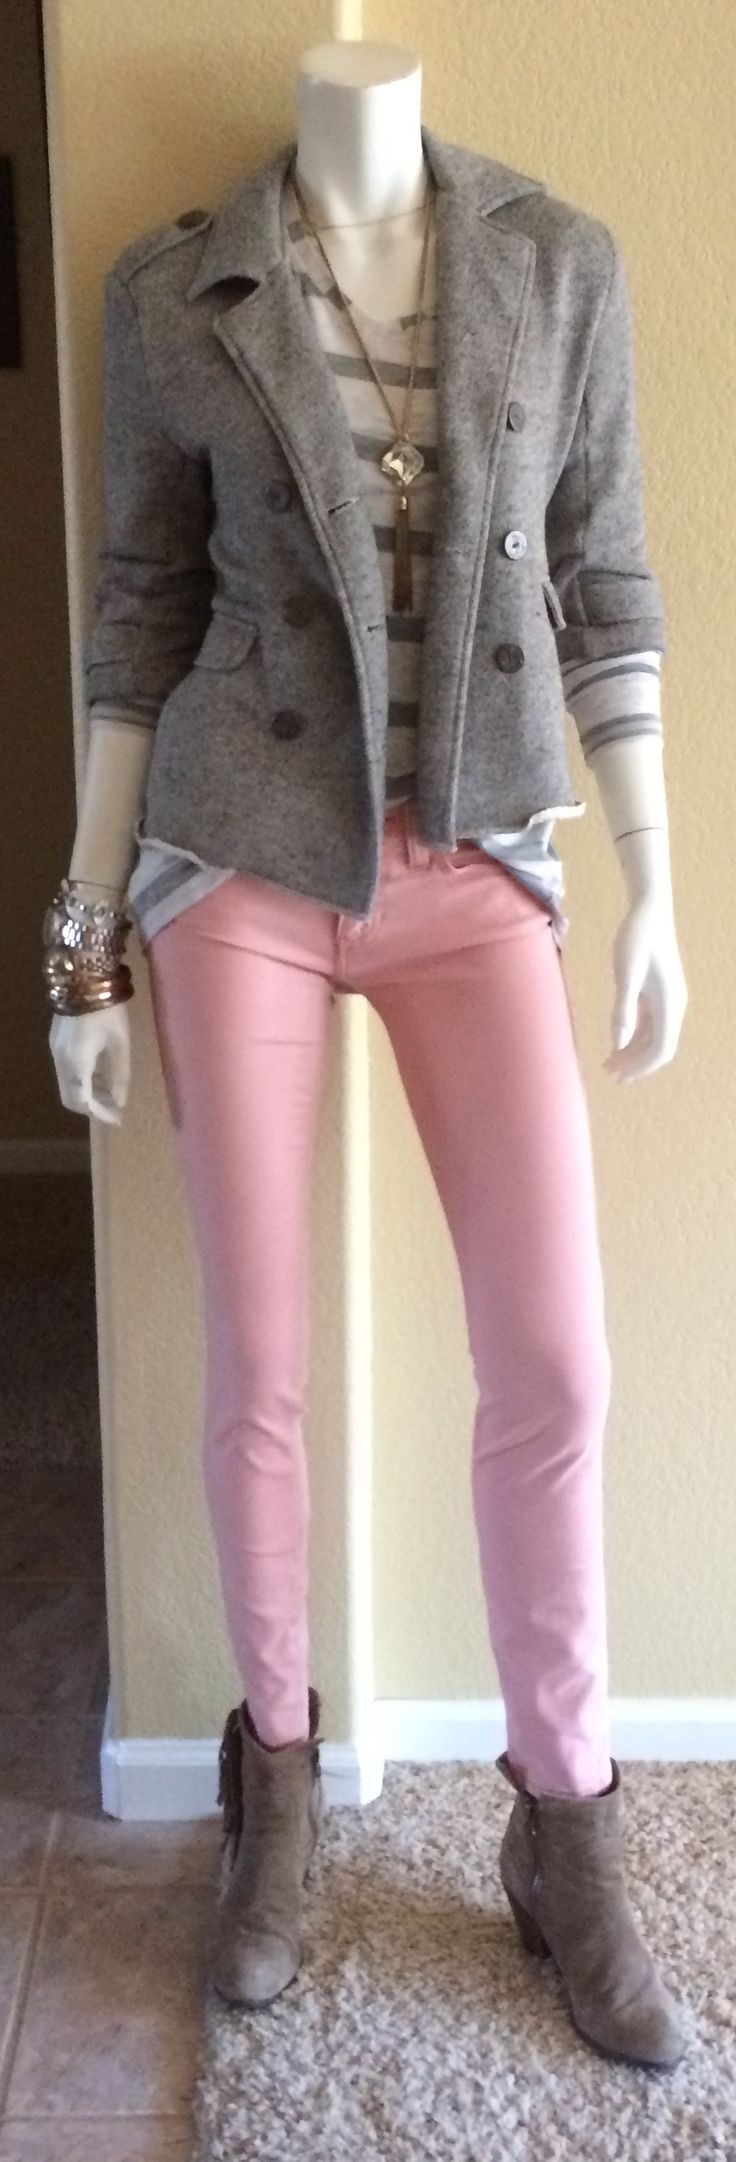 Daily Look: CAbi Spring '15 Nectar Skinny Jean with Fall's Striped Tee and our vintage Shrunken Pea Coat.  #CAbiClothing